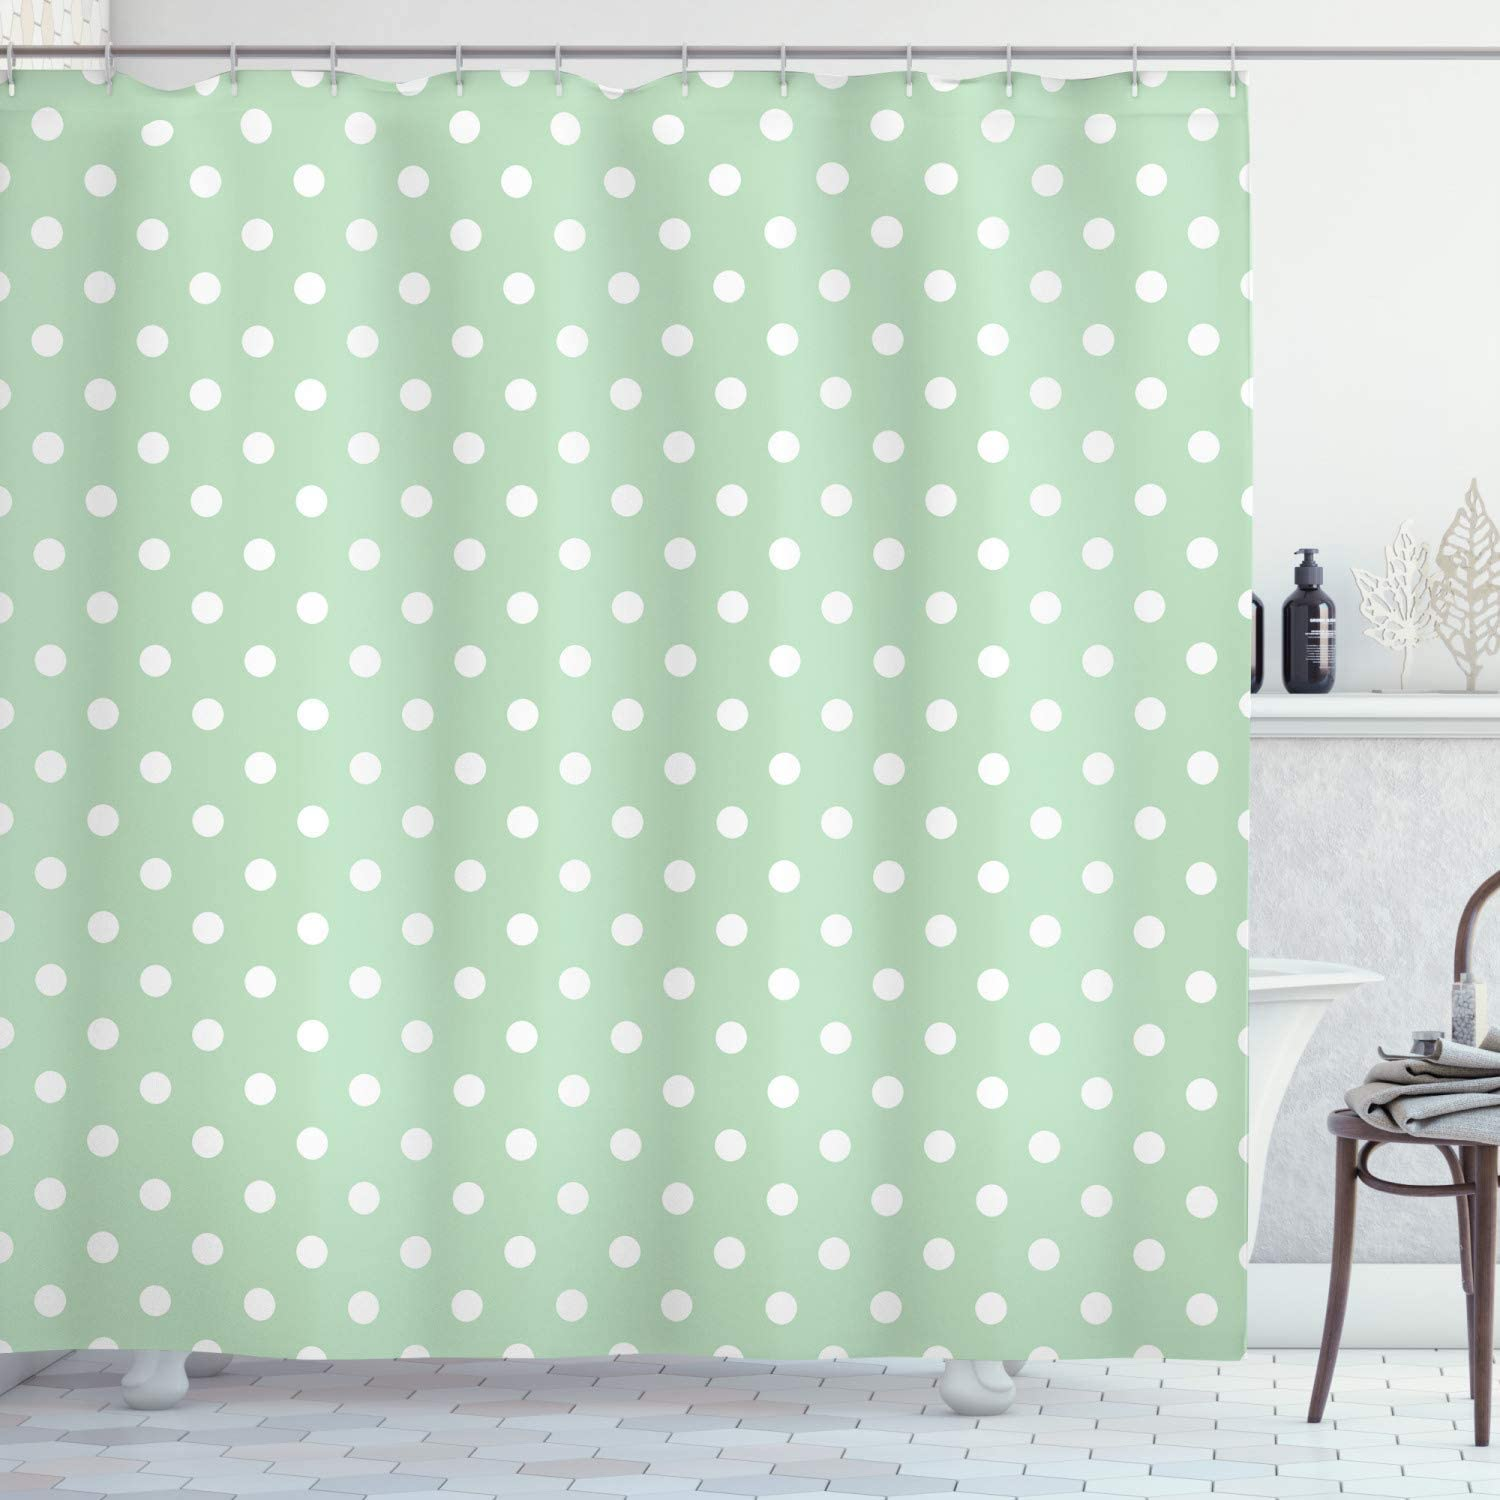 """Ambesonne Mint Shower Curtain, Classical Old Fashioned Polka Dots Pattern on Pale Green Fresh Background, Cloth Fabric Bathroom Decor Set with Hooks, 70"""" Long, Mint Green"""